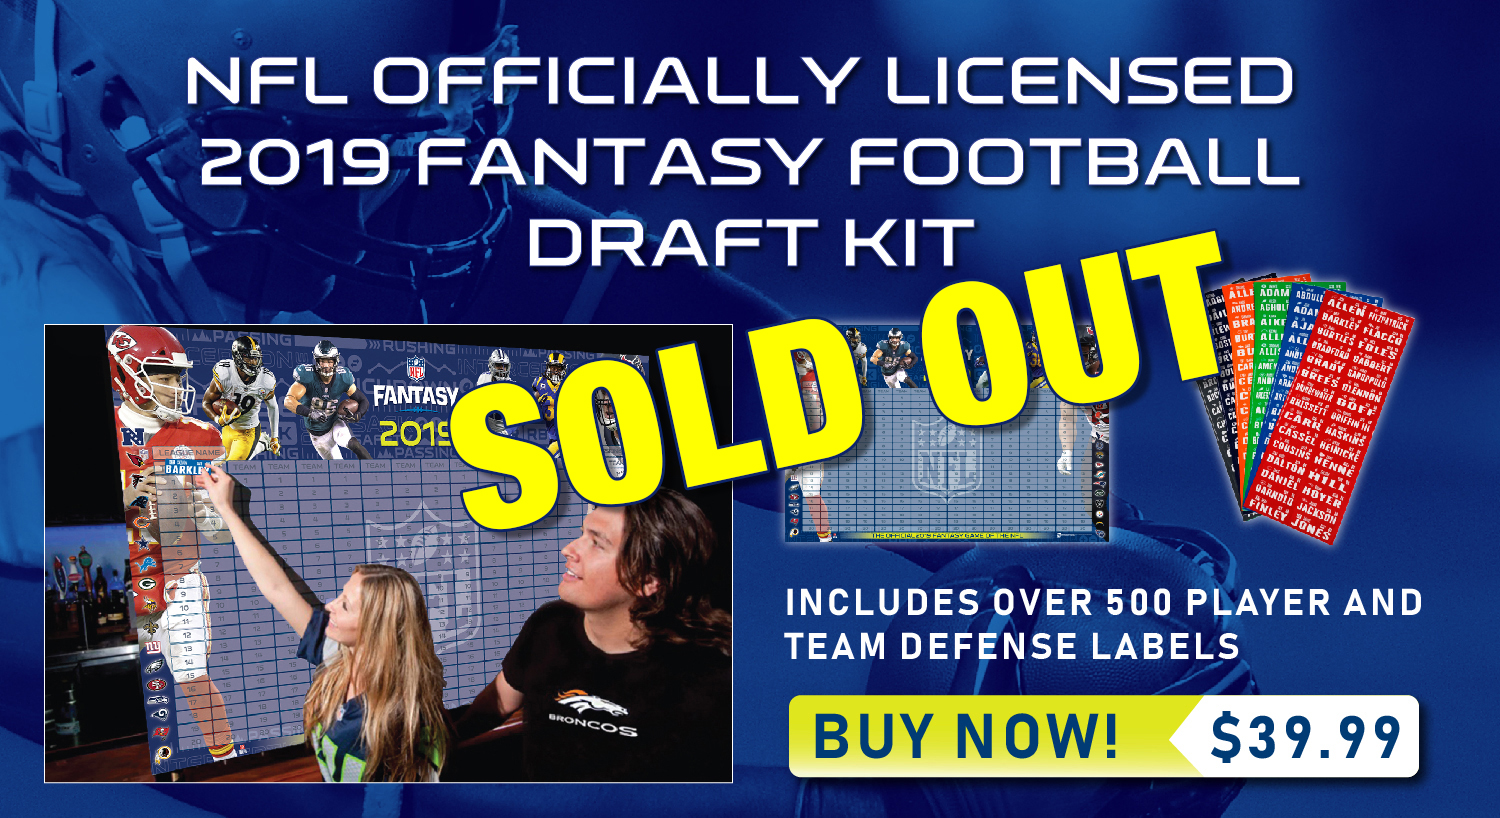 2019 Fantasy Football Draft Kit Home Page Slider_SOLDOUT.jpg